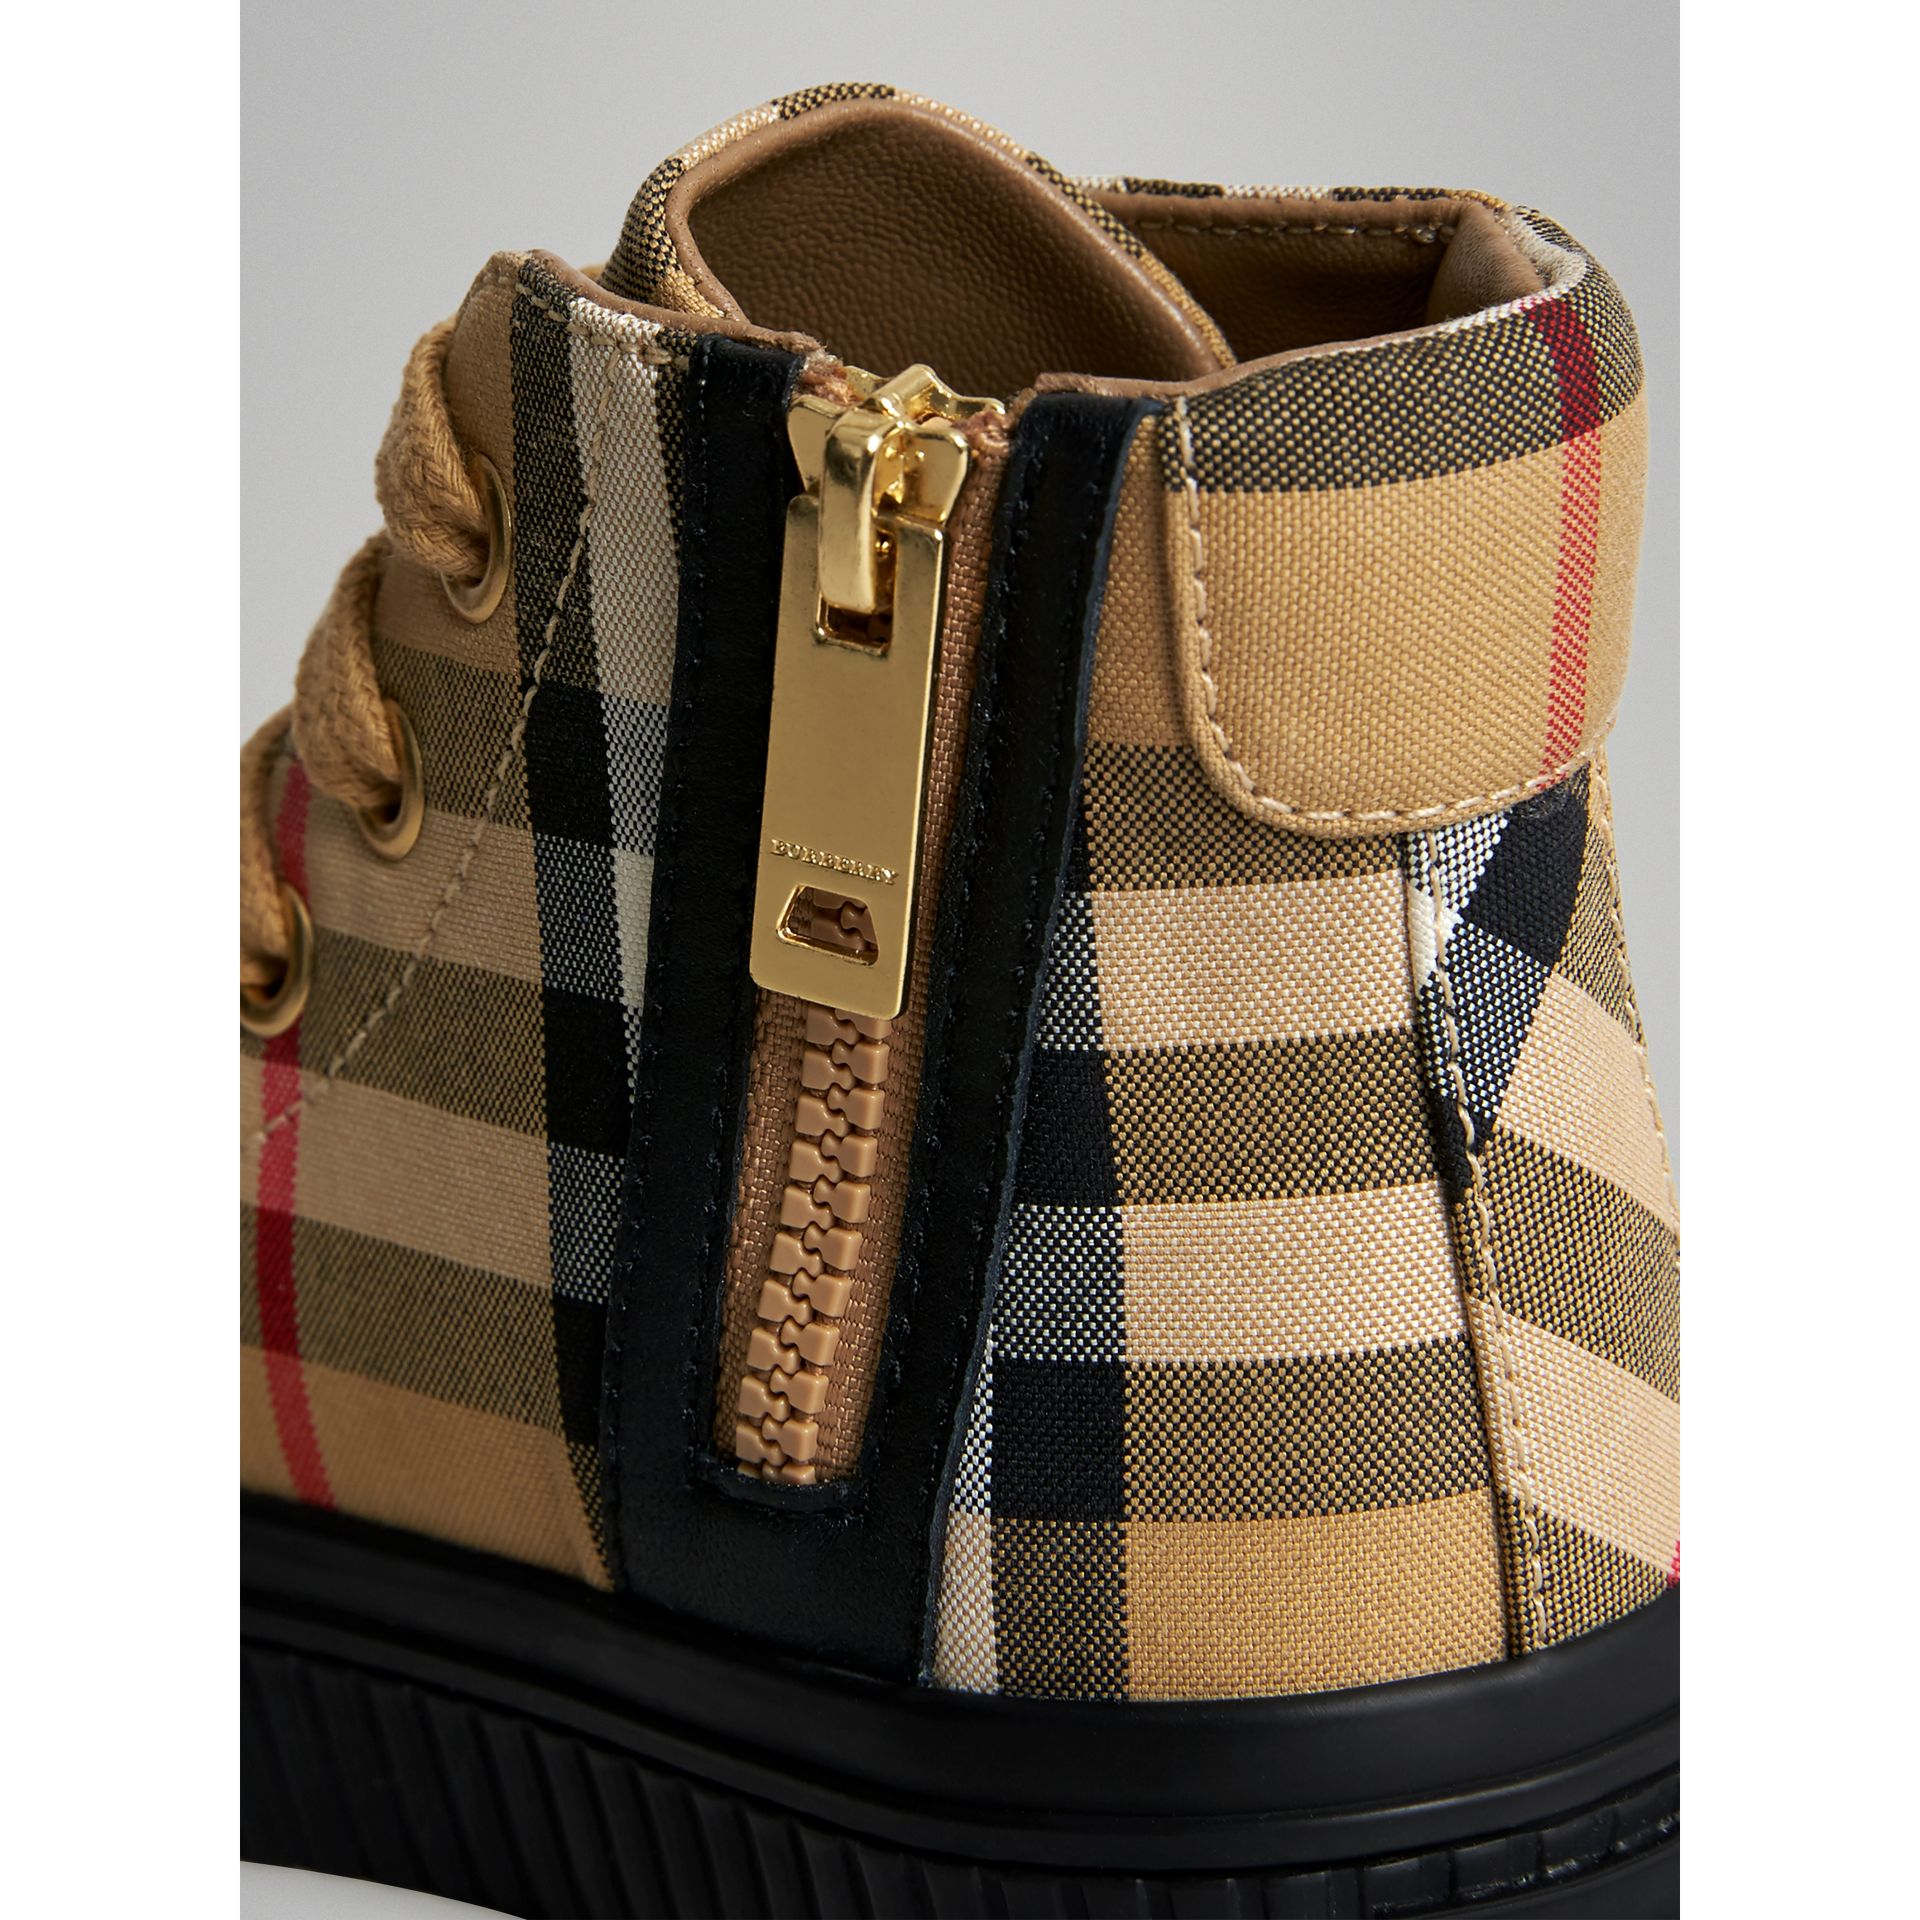 Sneakers montantes en cuir et à motif Vintage check (Jaune Antique/noir) - Enfant | Burberry - photo de la galerie 1